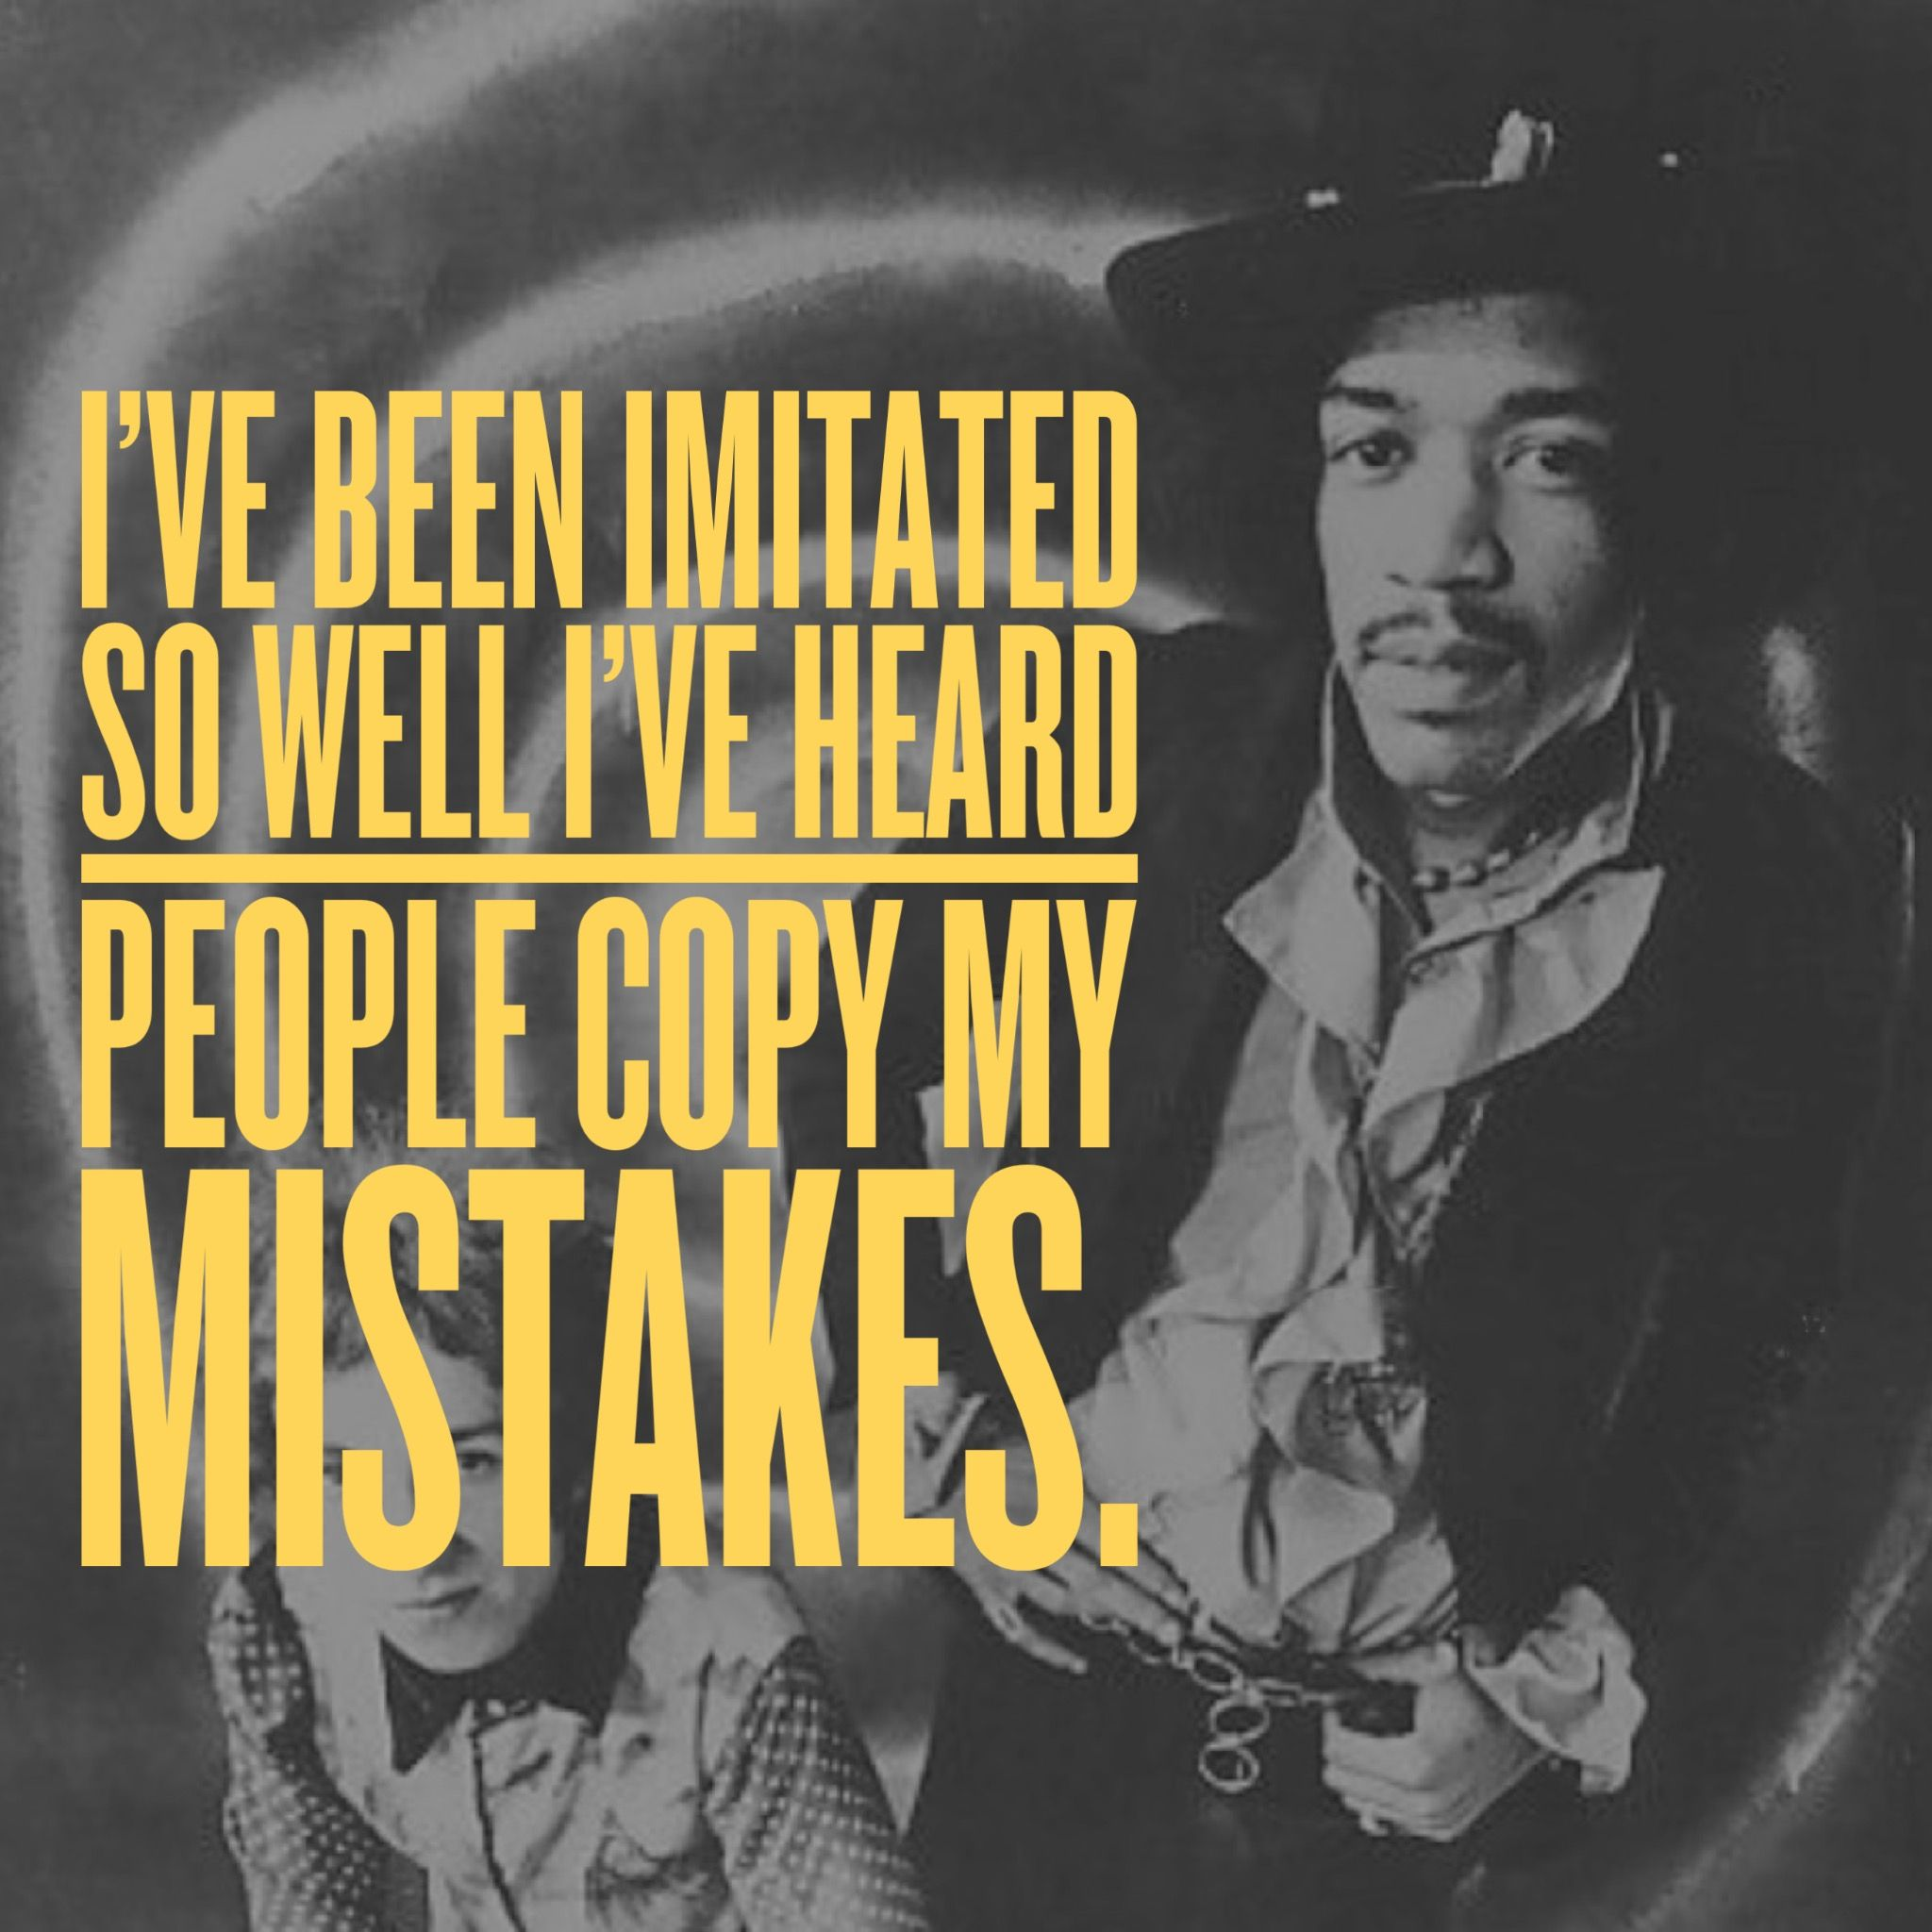 Jimi Hendrix Quotes Fair Image Result For Jimi Hendrix Quotes  Jimi  Pinterest  Jimi